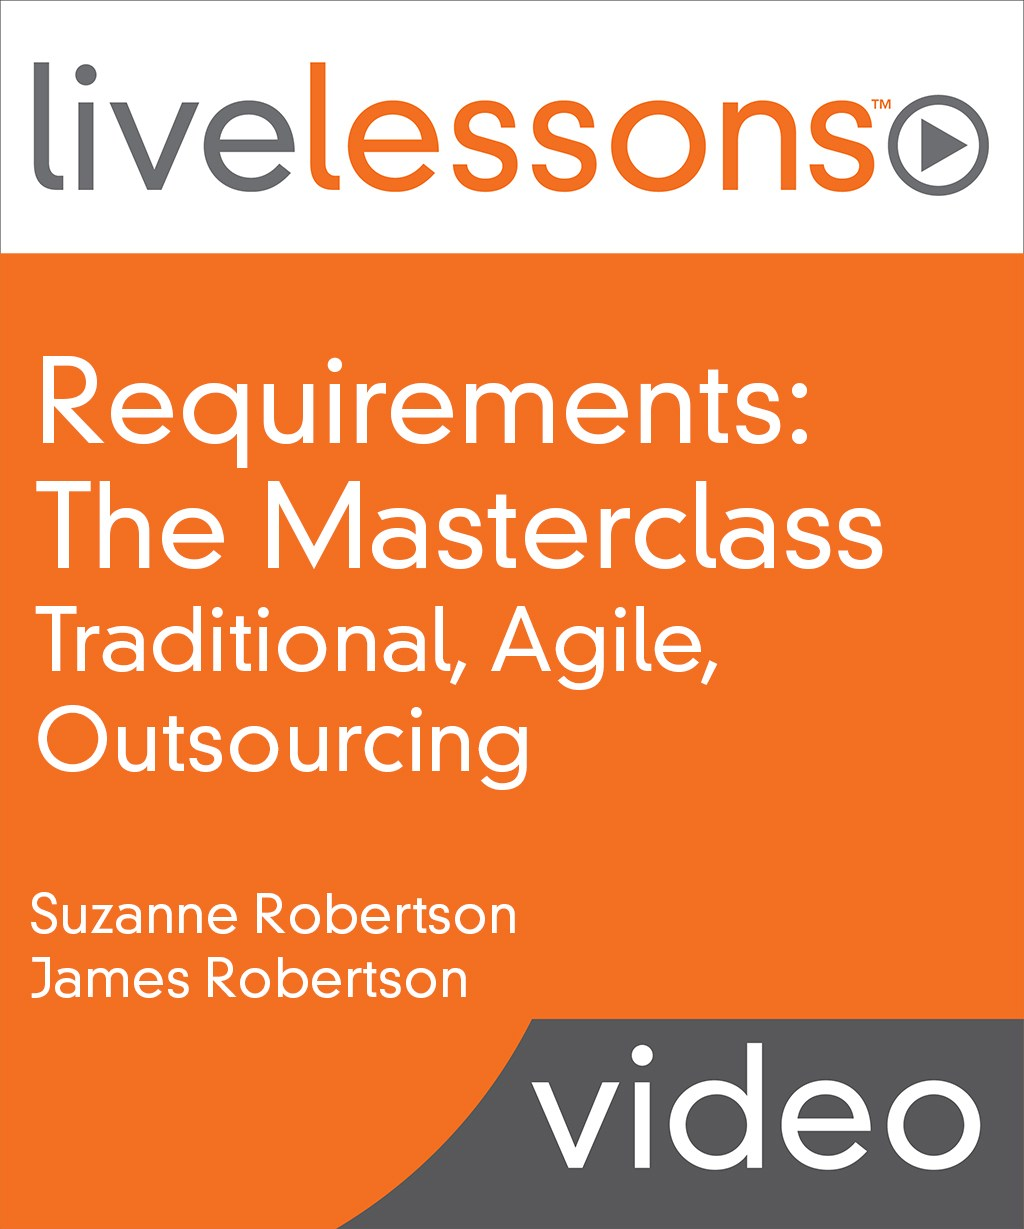 Requirements: The Masterclass LiveLessons--Agile, Traditional, Outsourcing (Video Training)